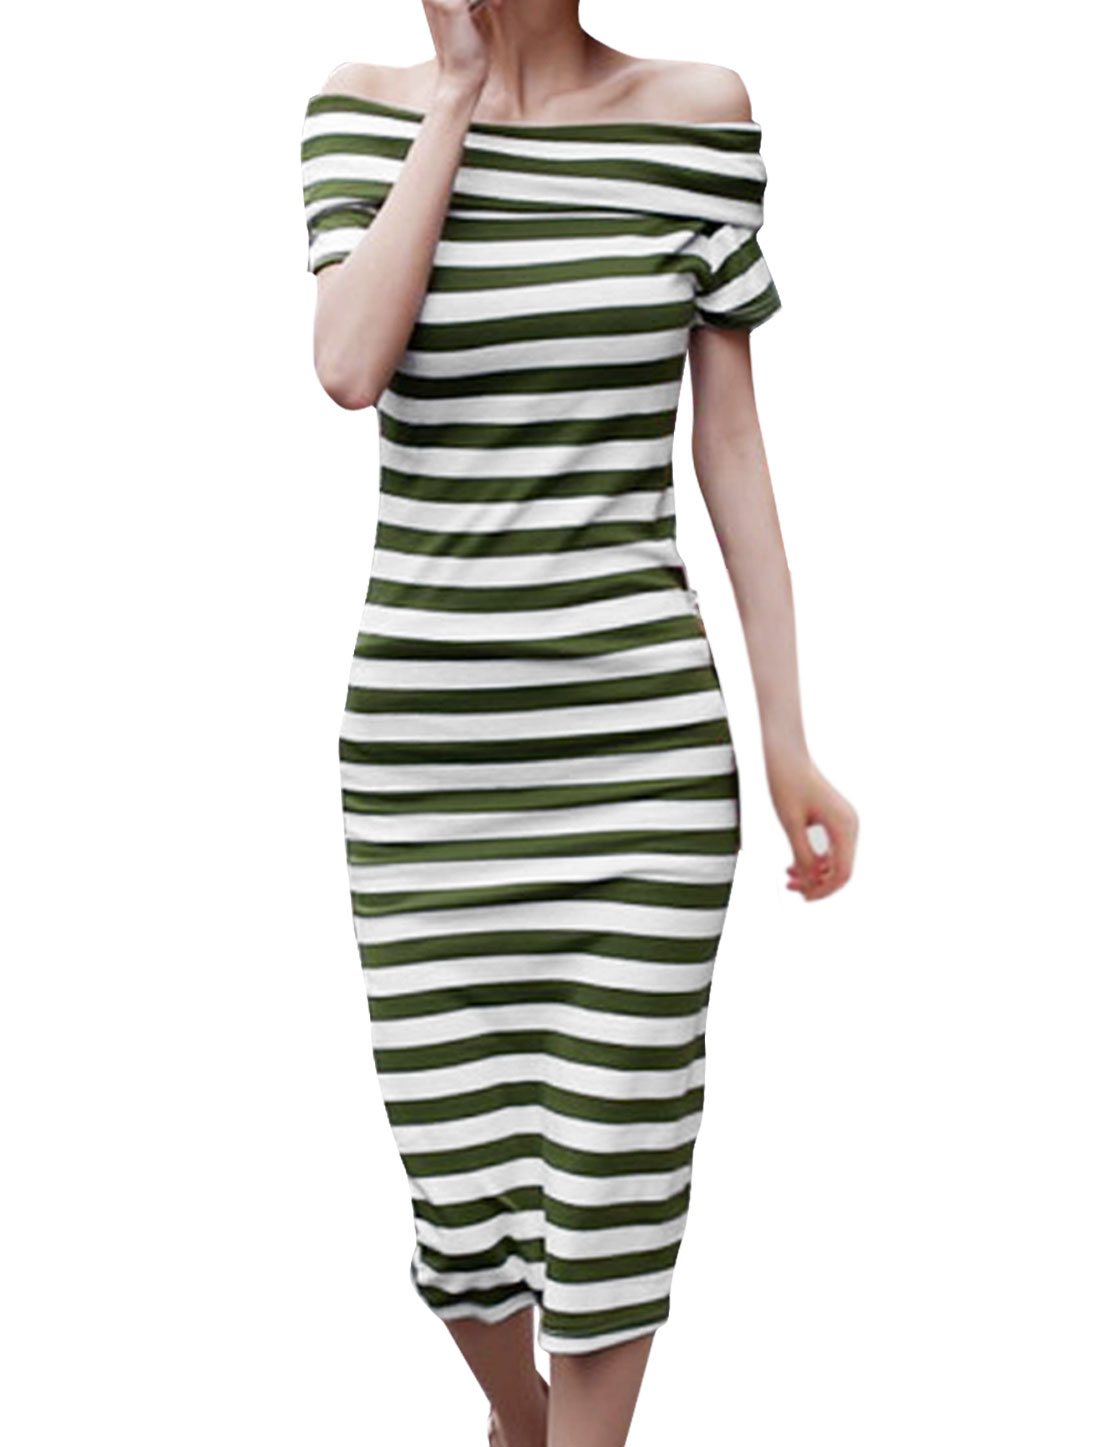 Lady Fitted Horizontal Stripes Prints Olive Green White Mid-calf Dress XS